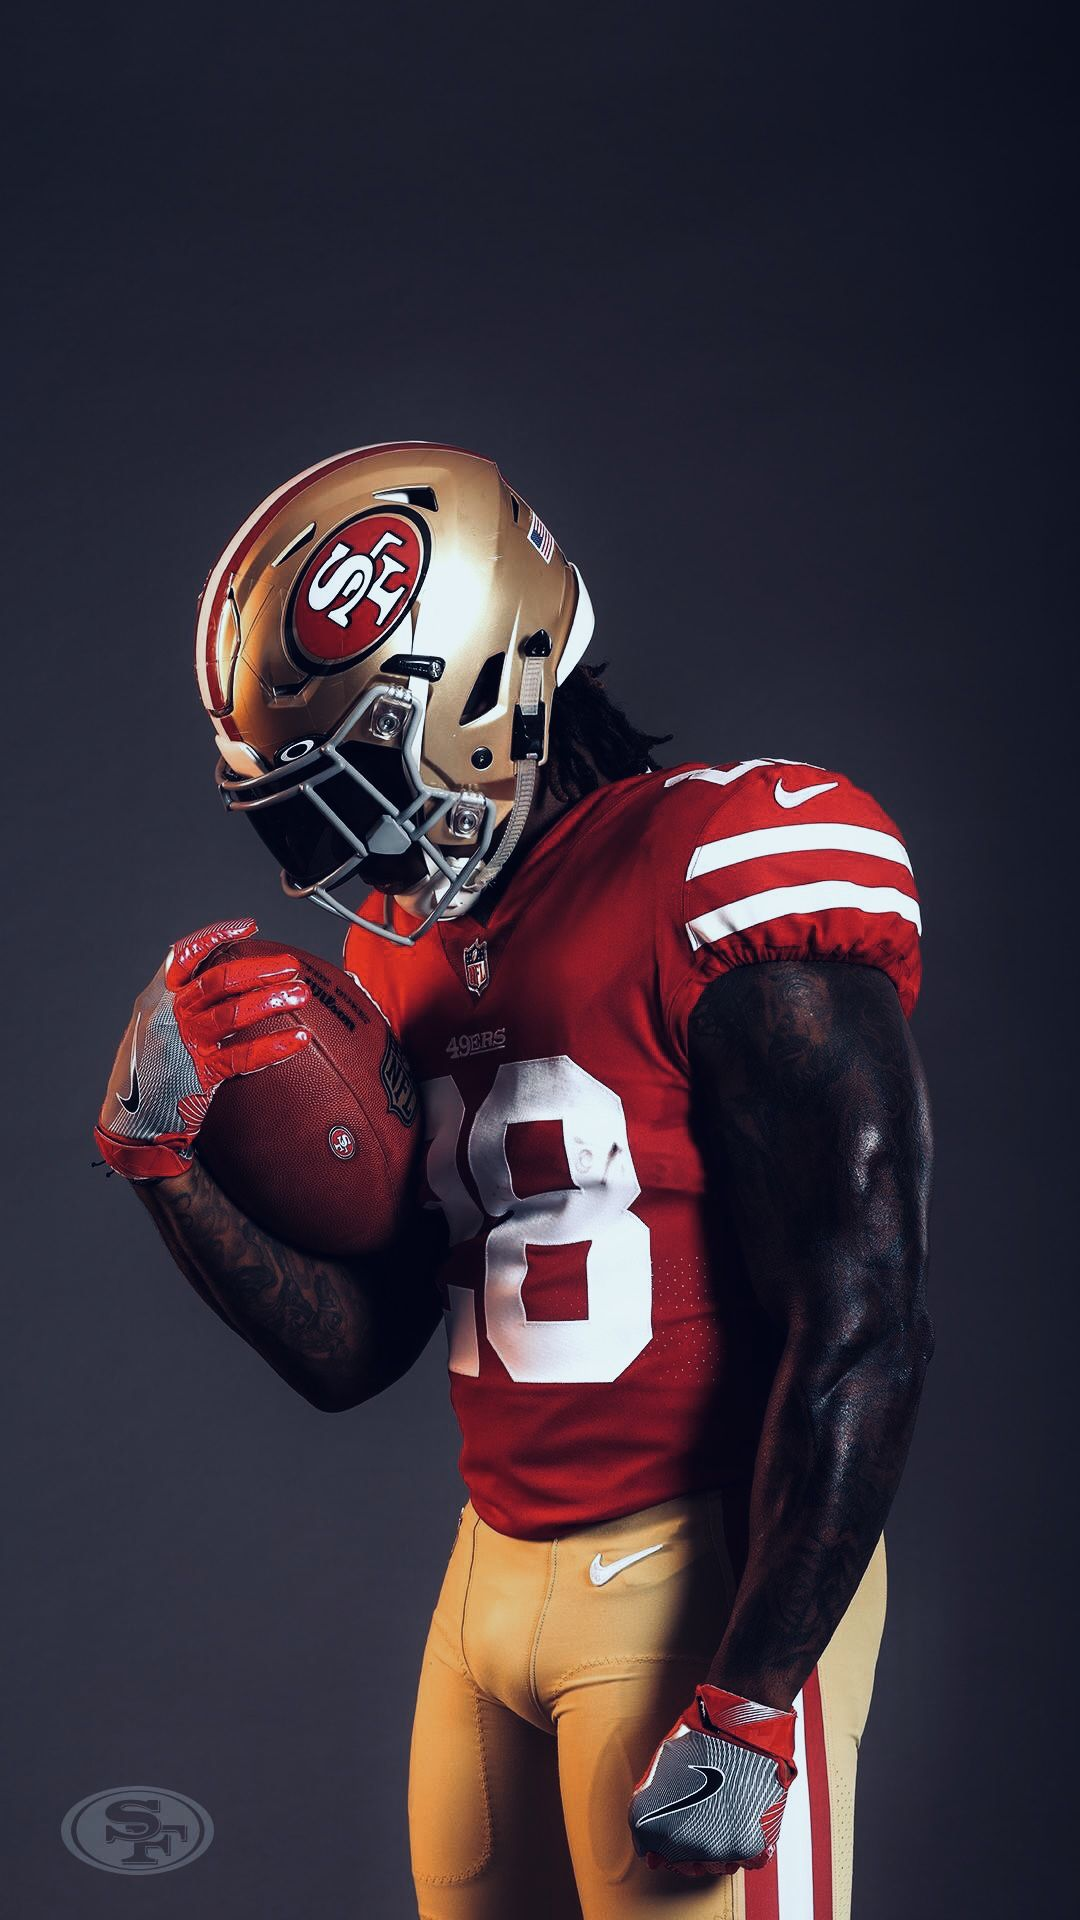 Black 49ers Wallpaper Iphone In 2020 49ers San Francisco 49ers Football Nfl 49ers